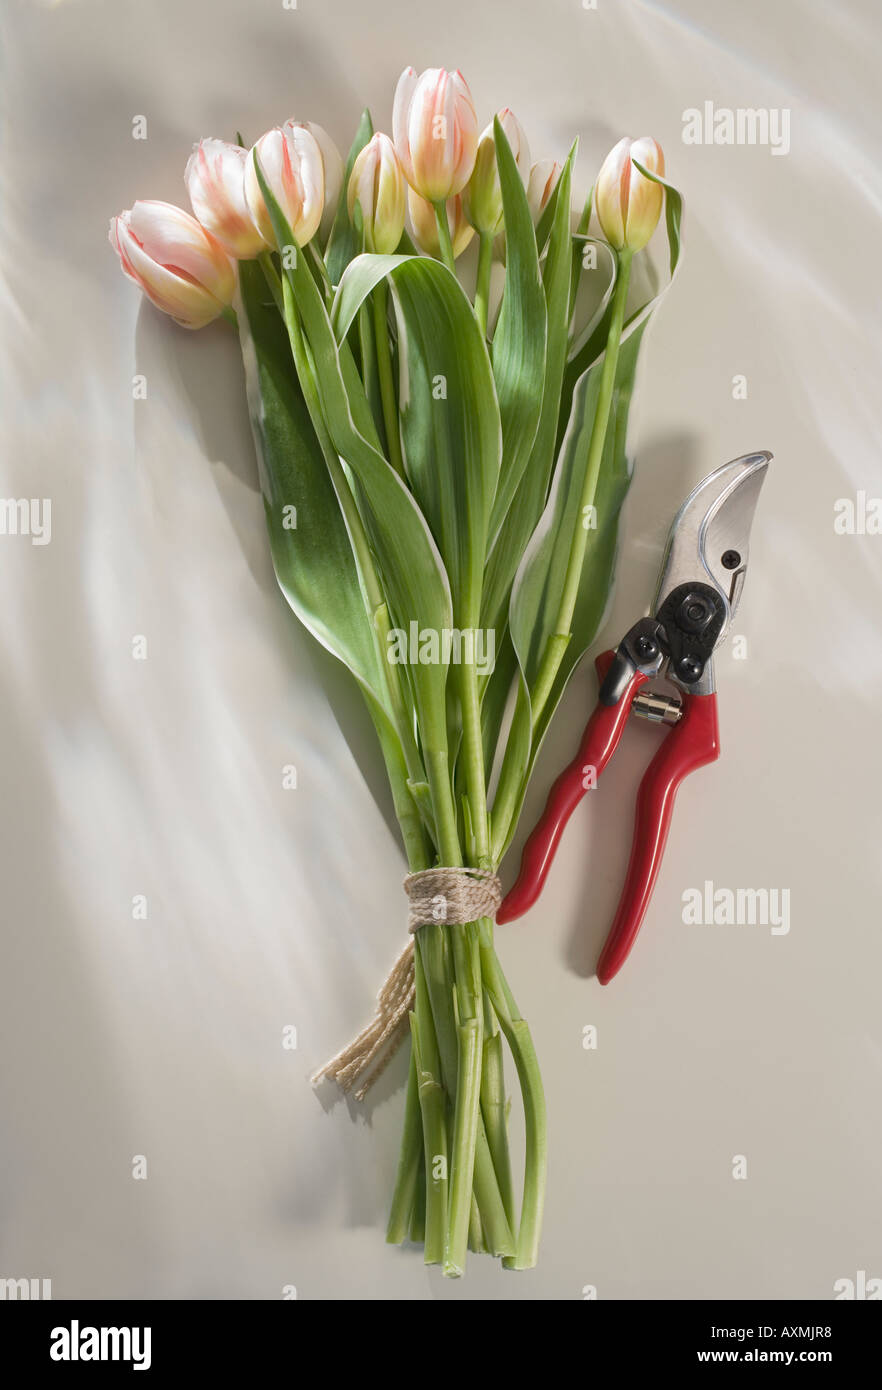 Bunch Of Pink Tulips With Garden Clippers Stock Photo Royalty Free